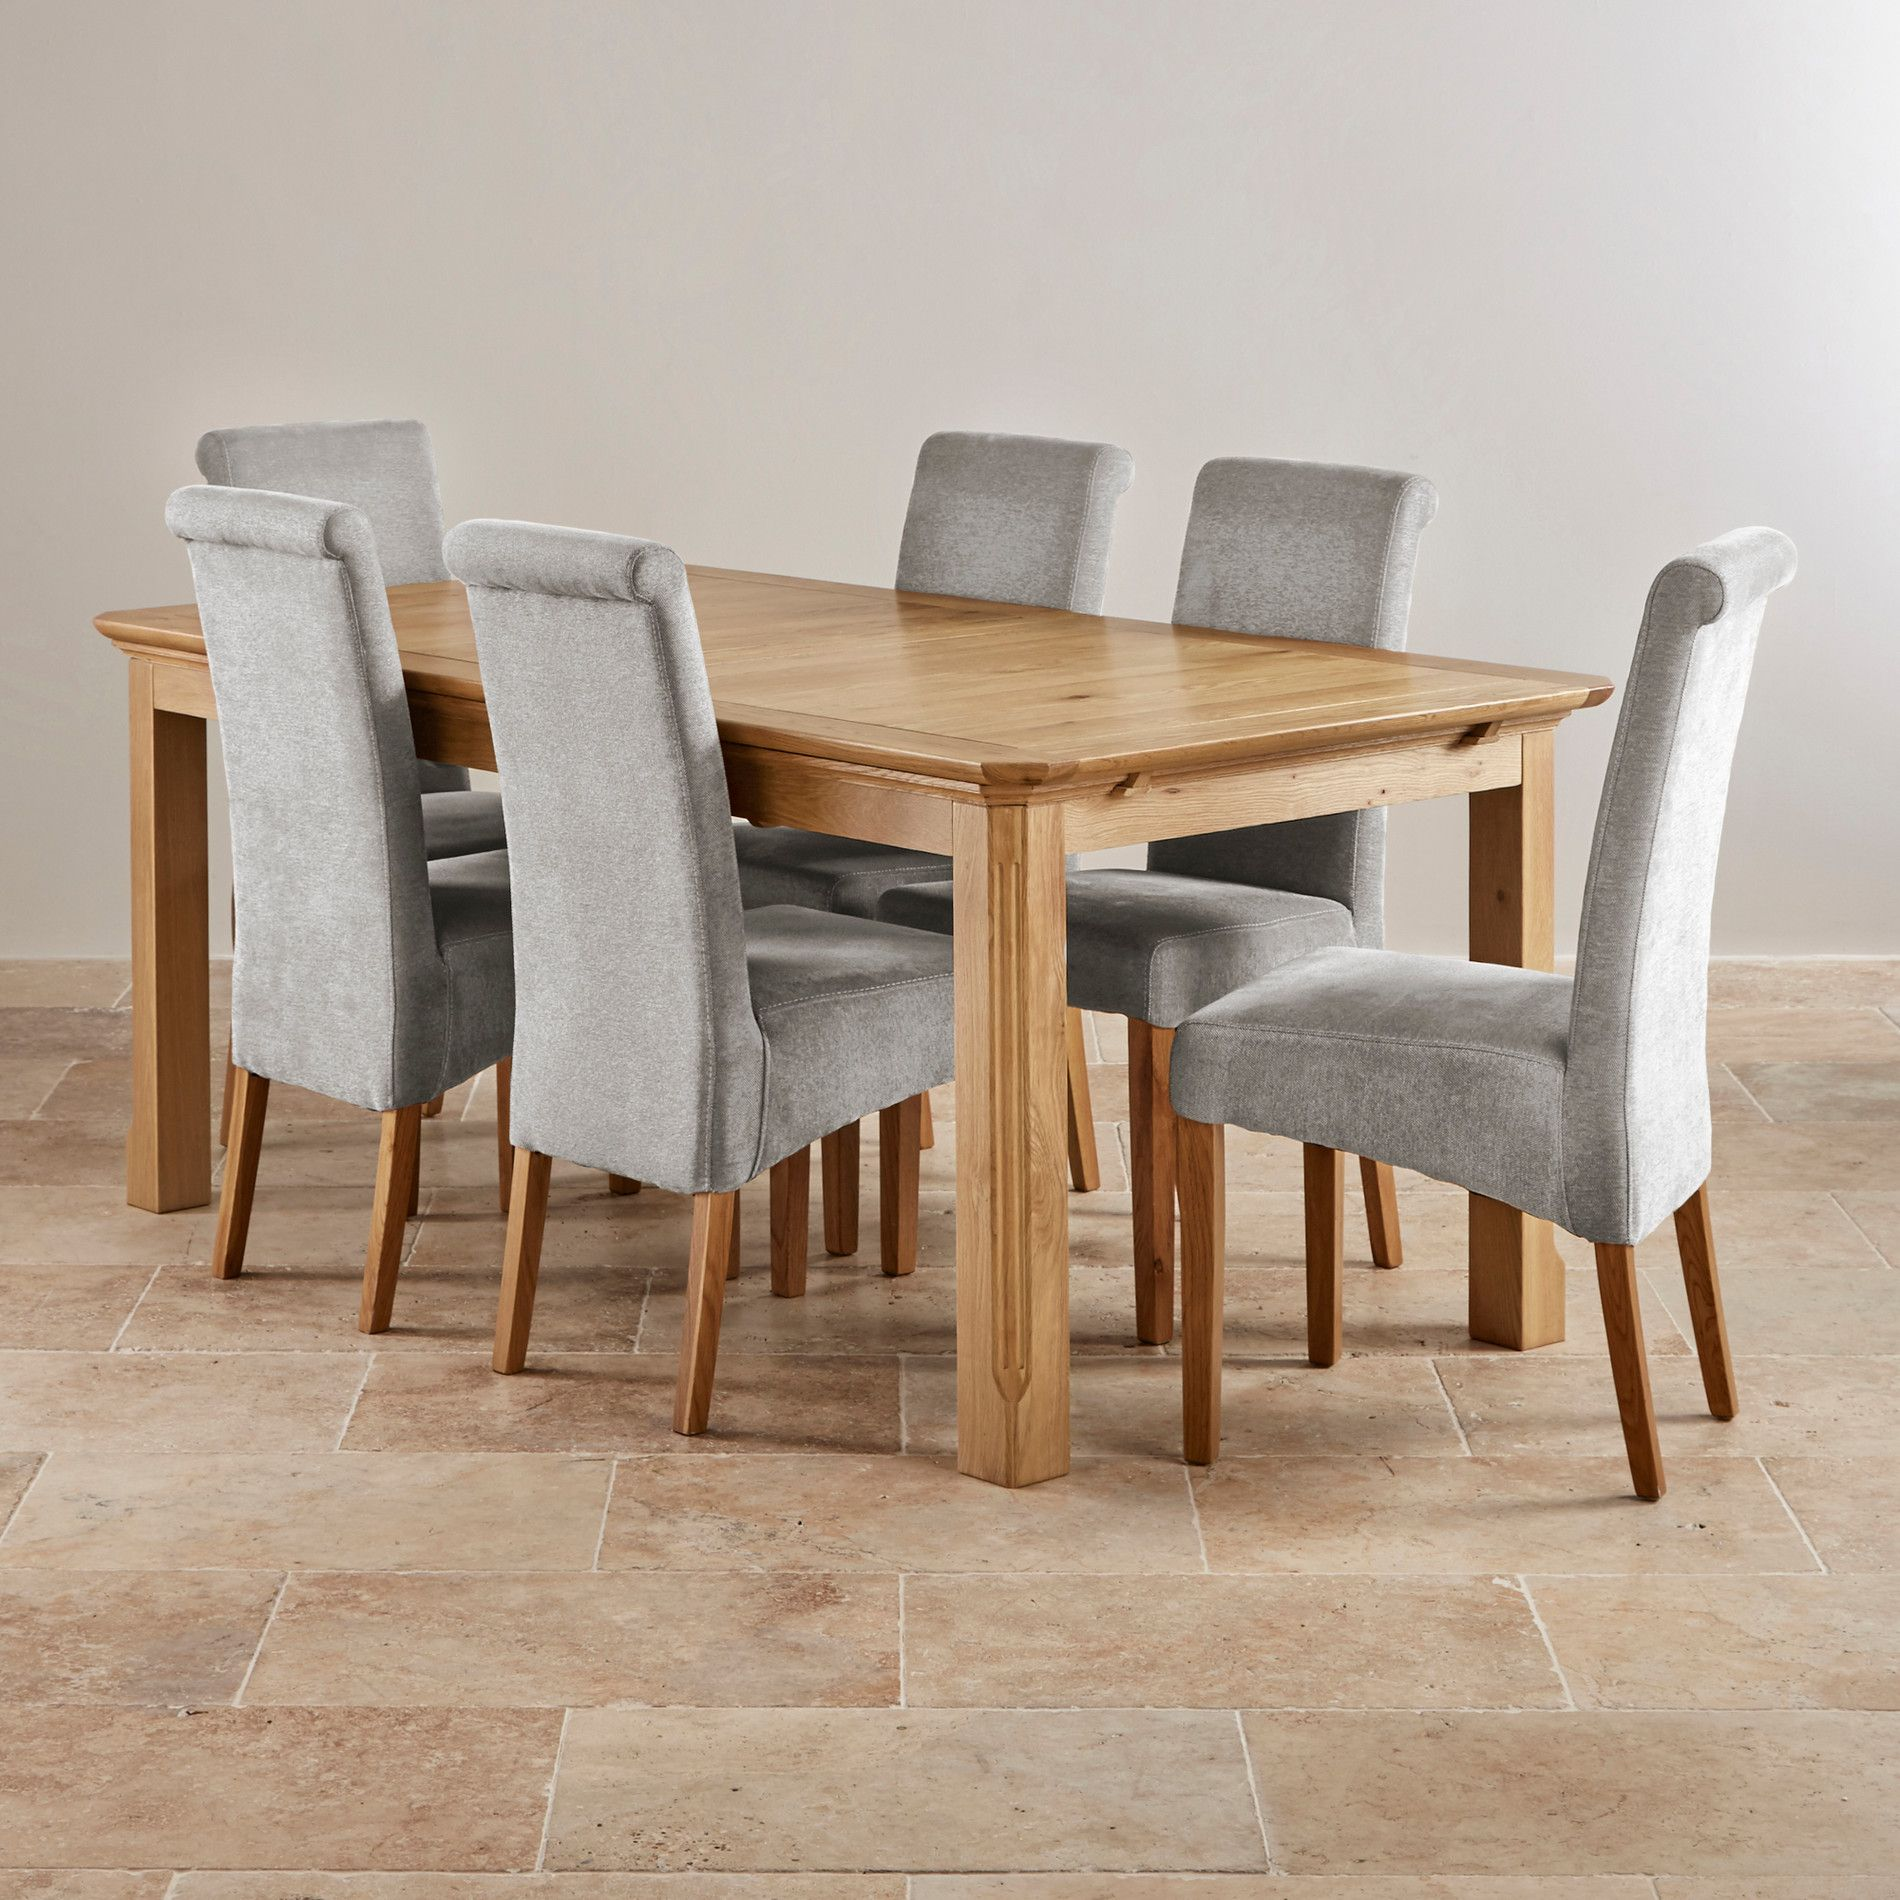 35++ Oak furniture land dining table and chairs Various Types